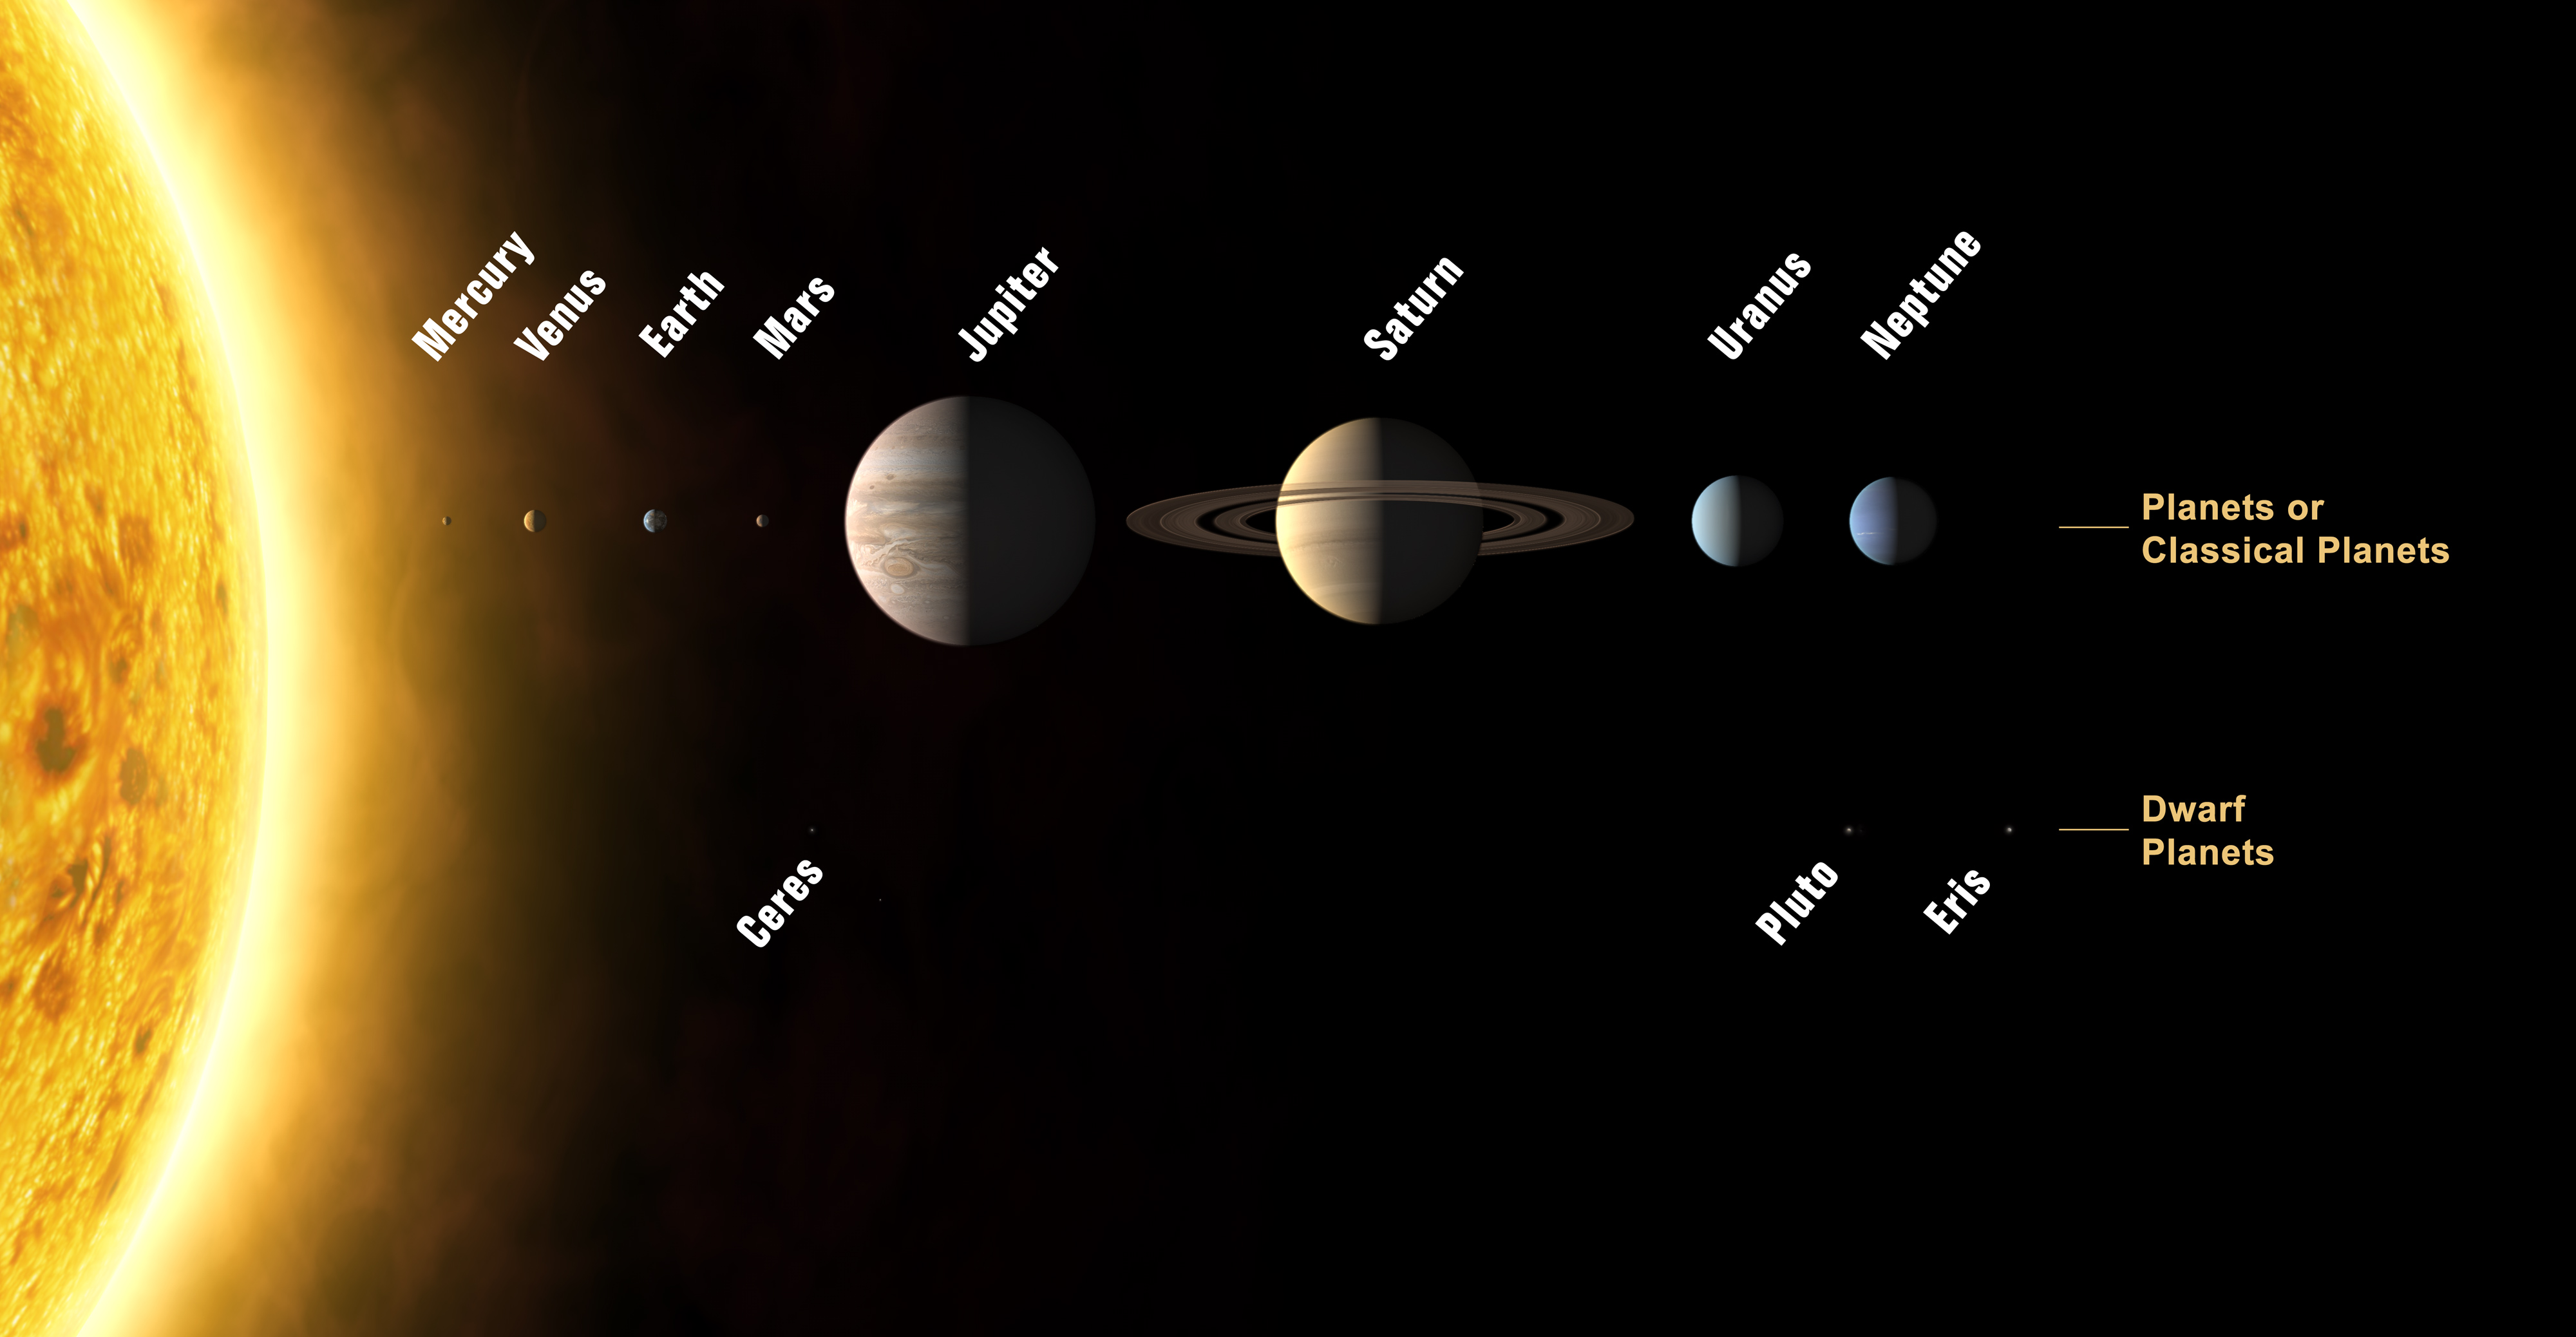 This annotated image shows an artist's impression of the Solar System